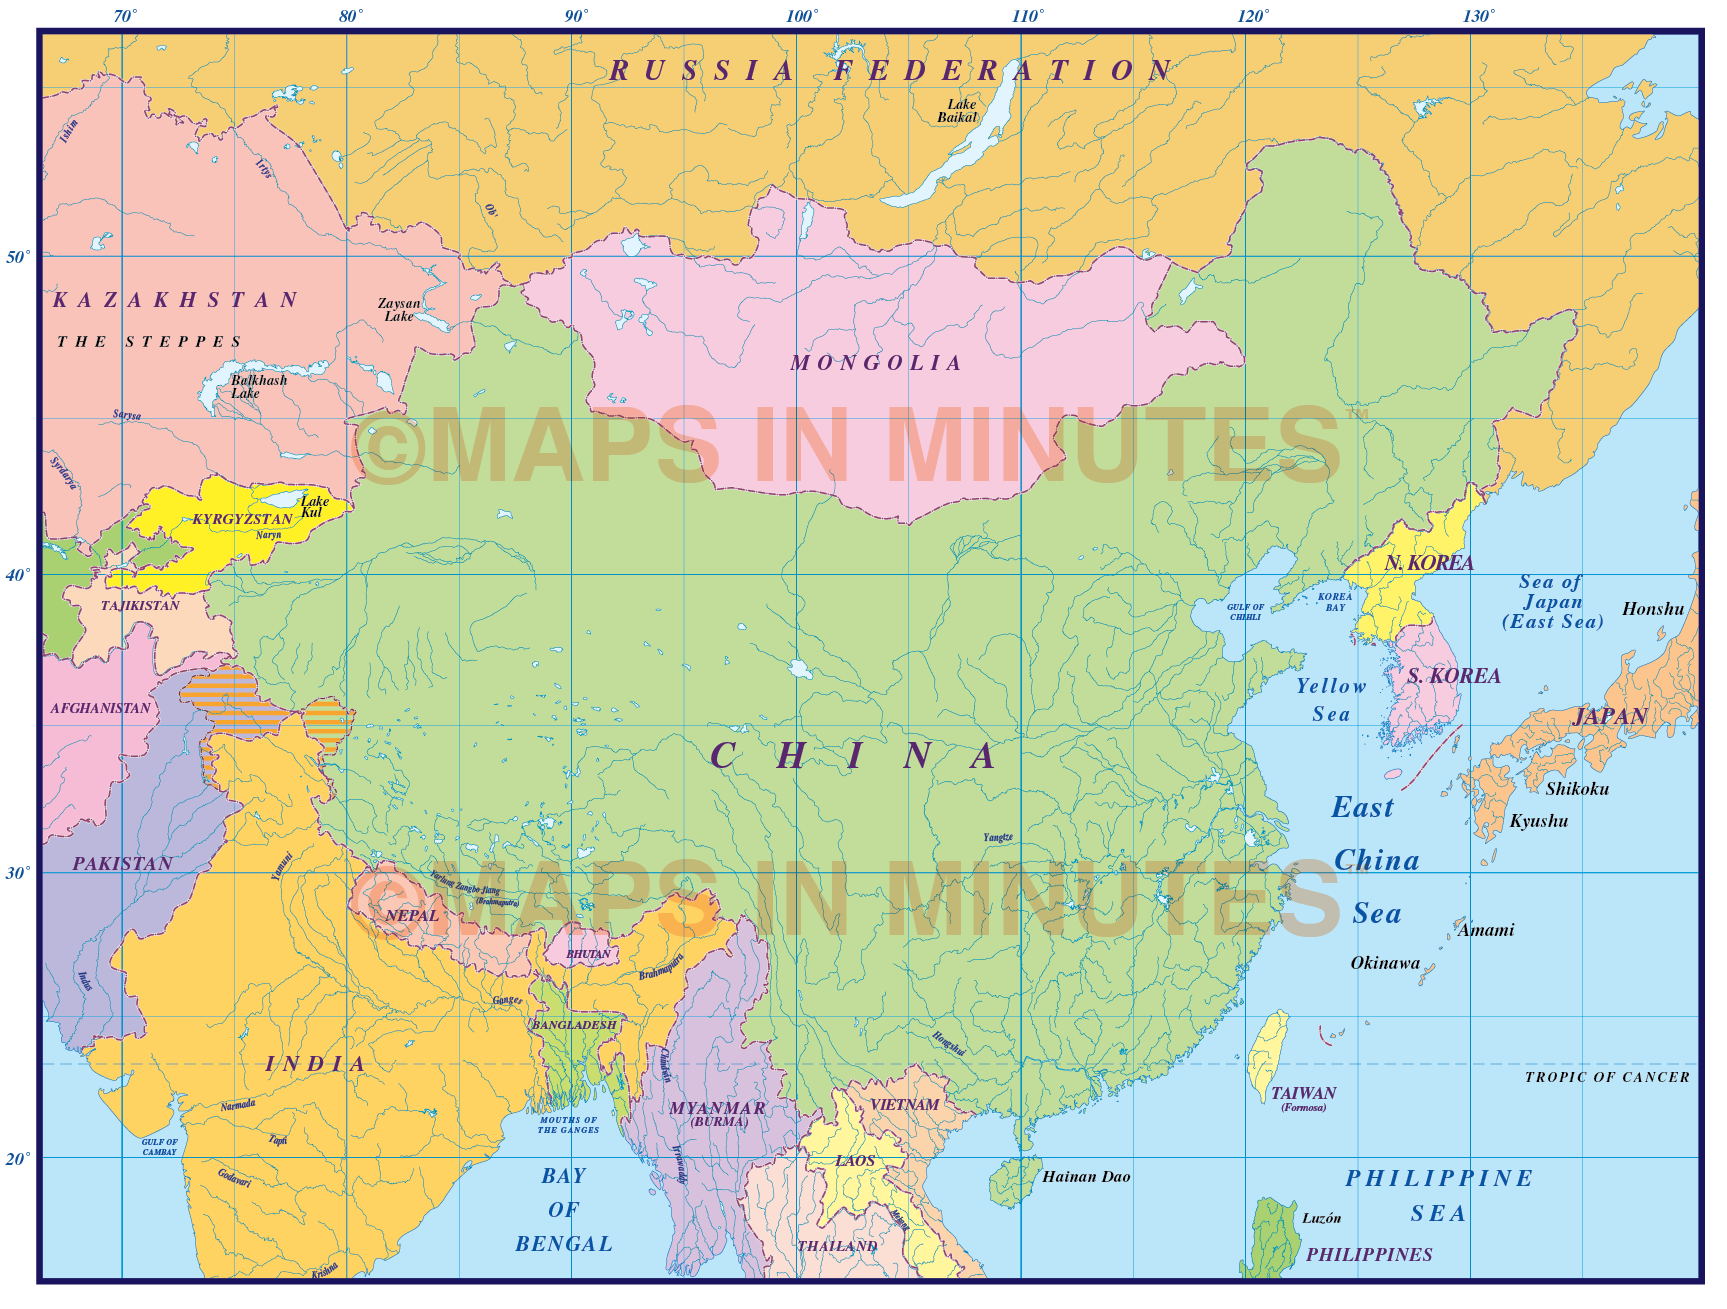 China first level political country map 10000000 scale in china simple country map 10m scale gumiabroncs Images